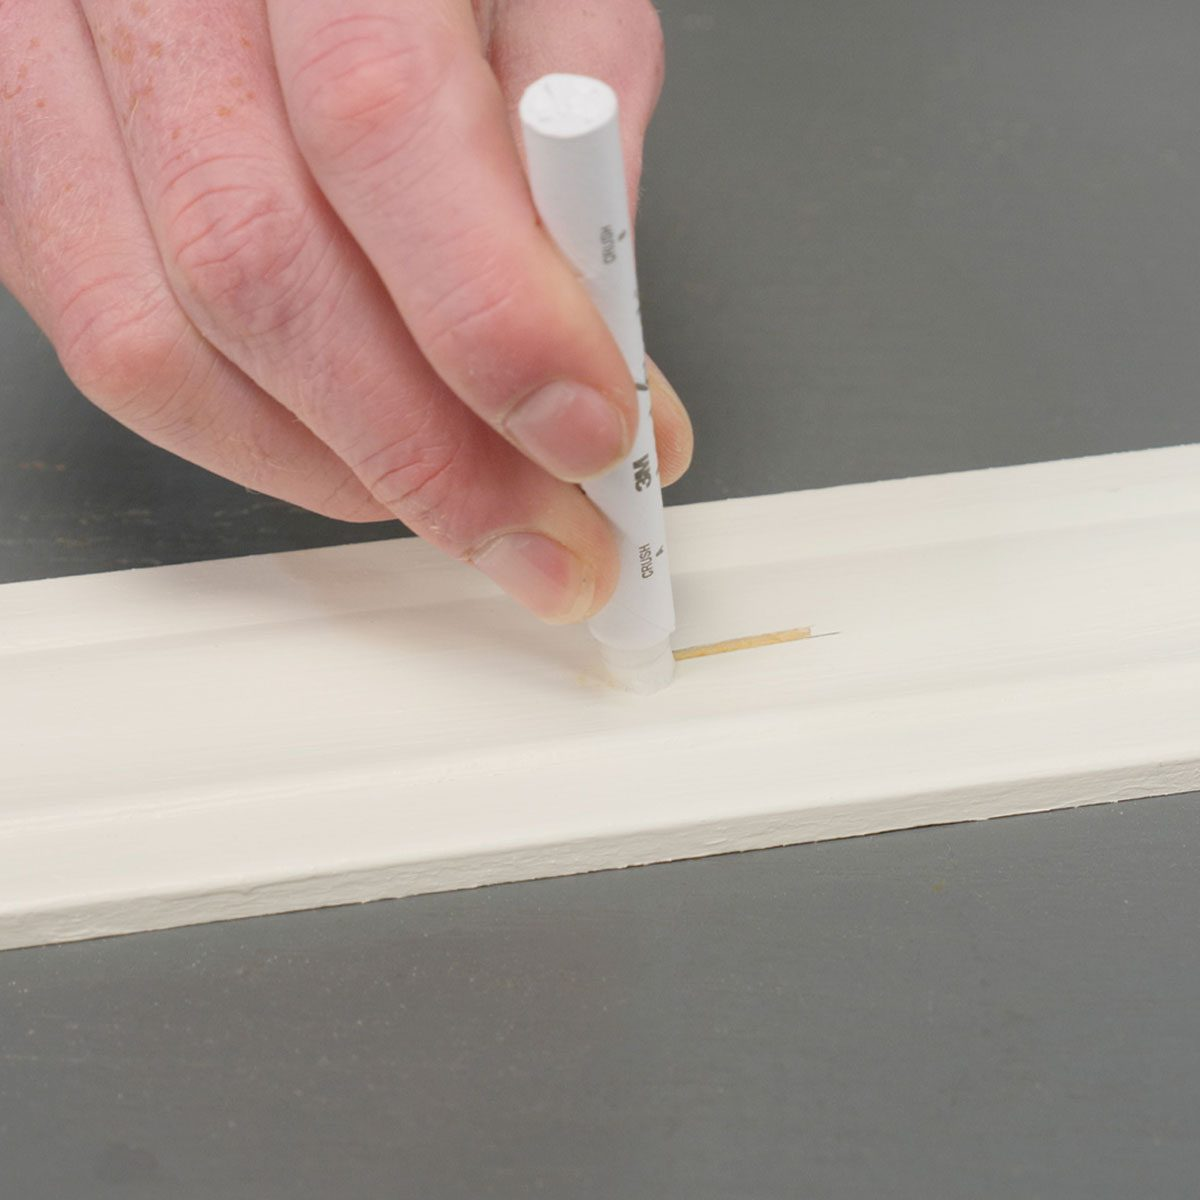 remove paint from wood lead test